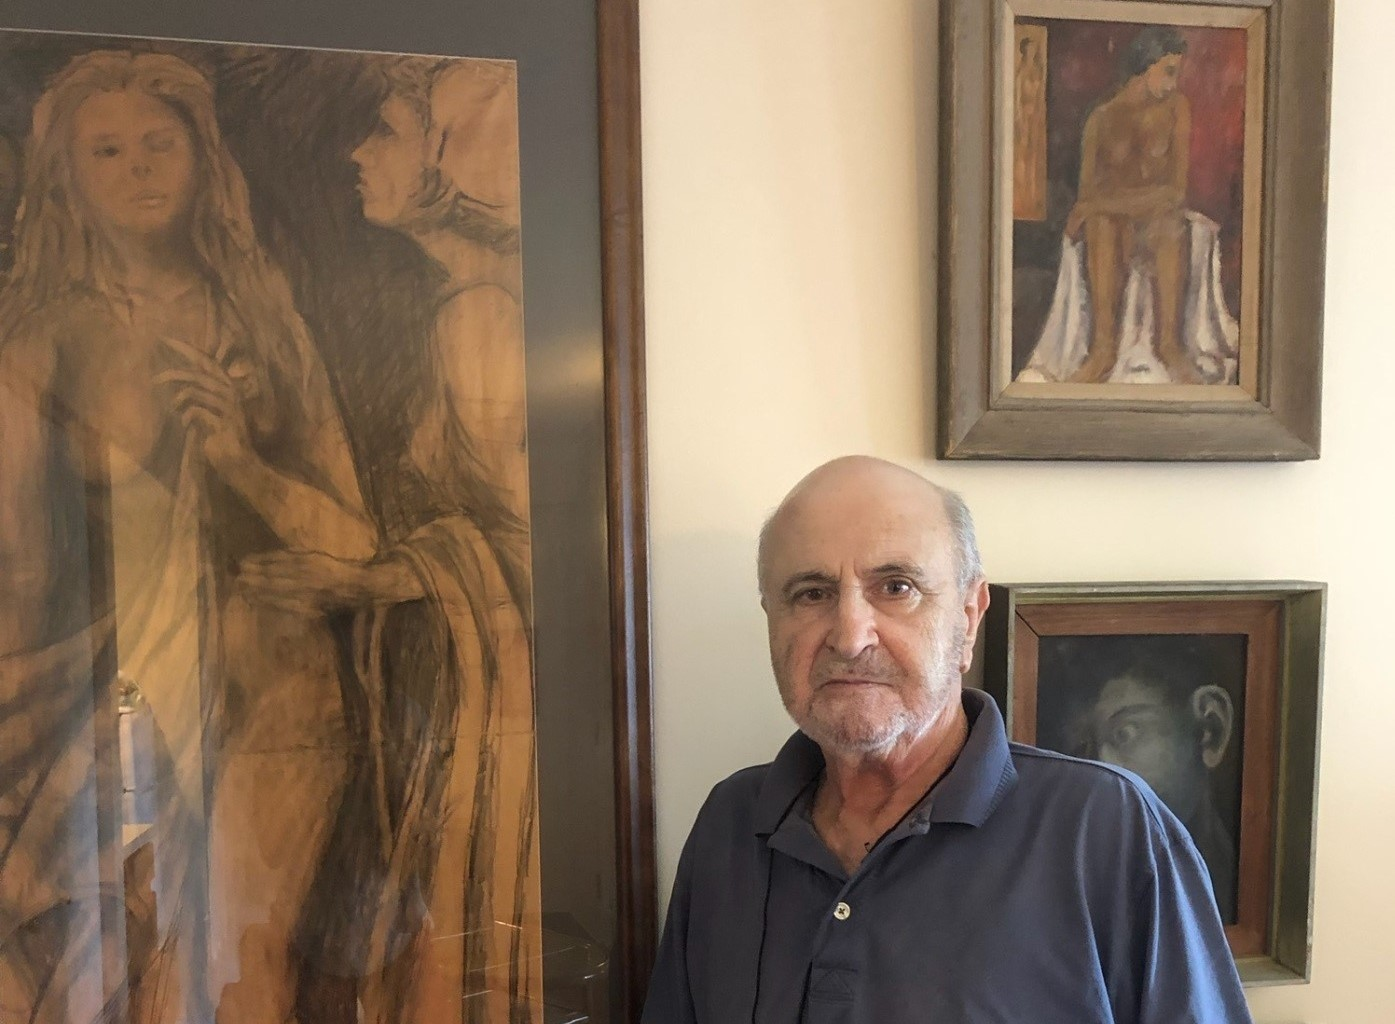 Five Star Senior Living to Showcase Talent of One of Its Residents, a Former Architect and Artist